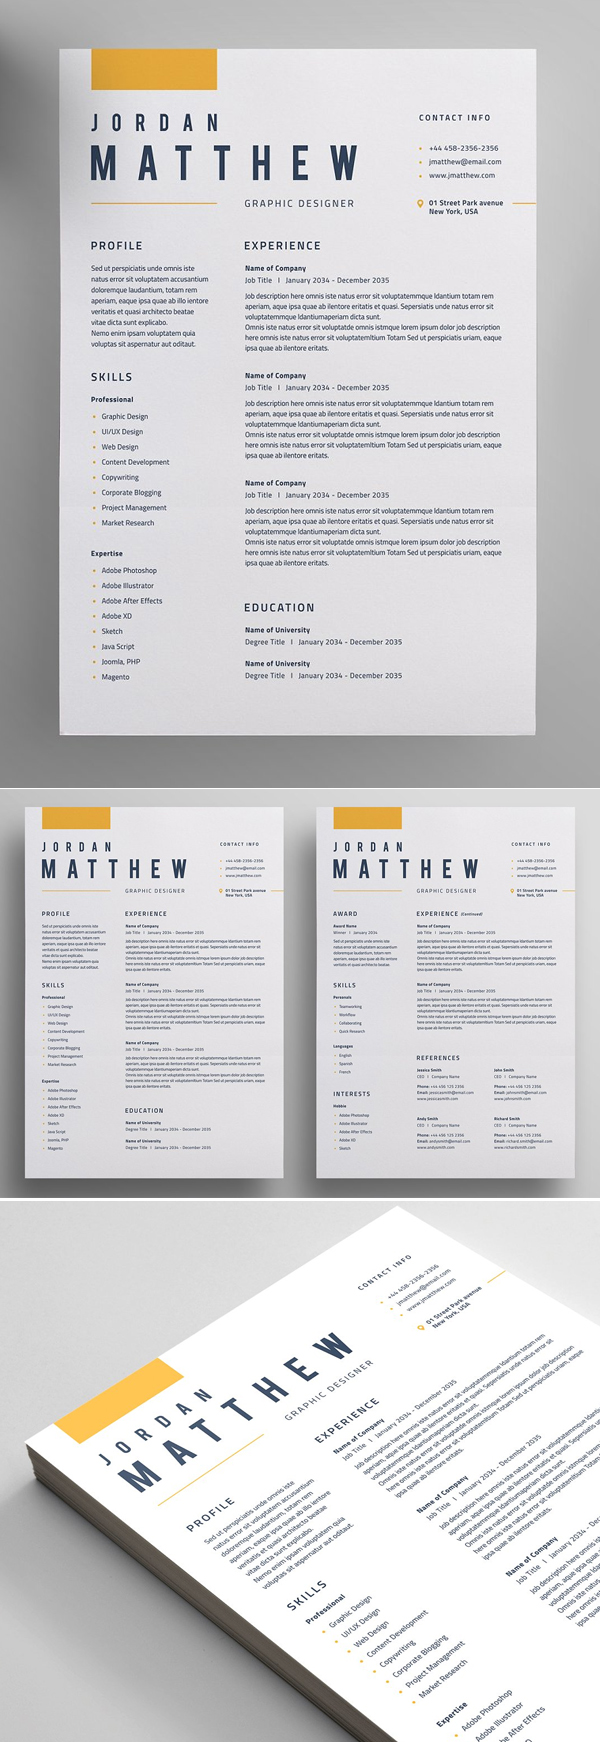 50 Best Resume Templates Of 2020 - 9